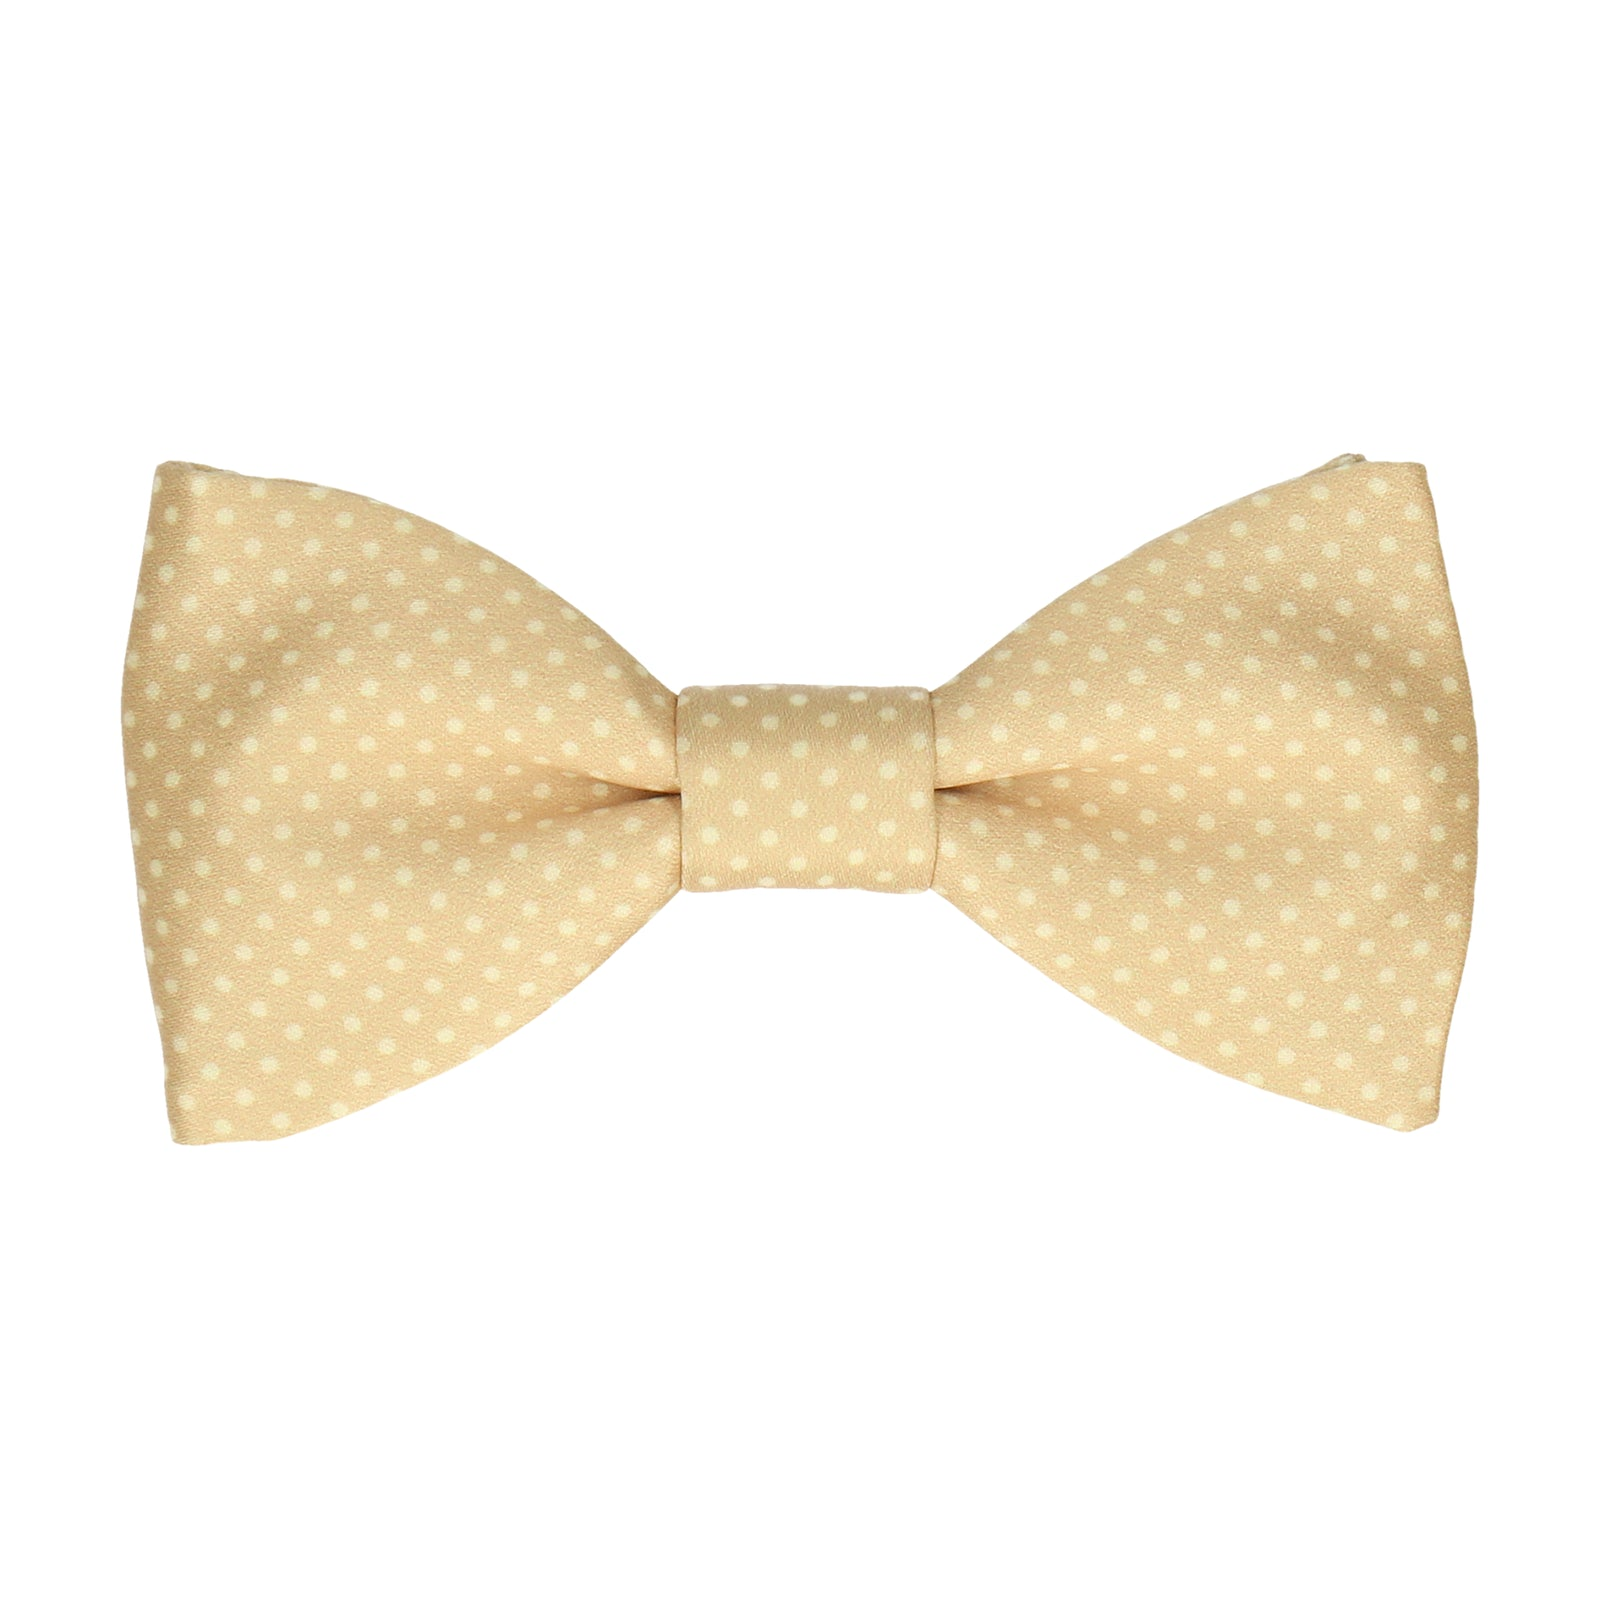 Dickinson in Pure Gold Bow Tie